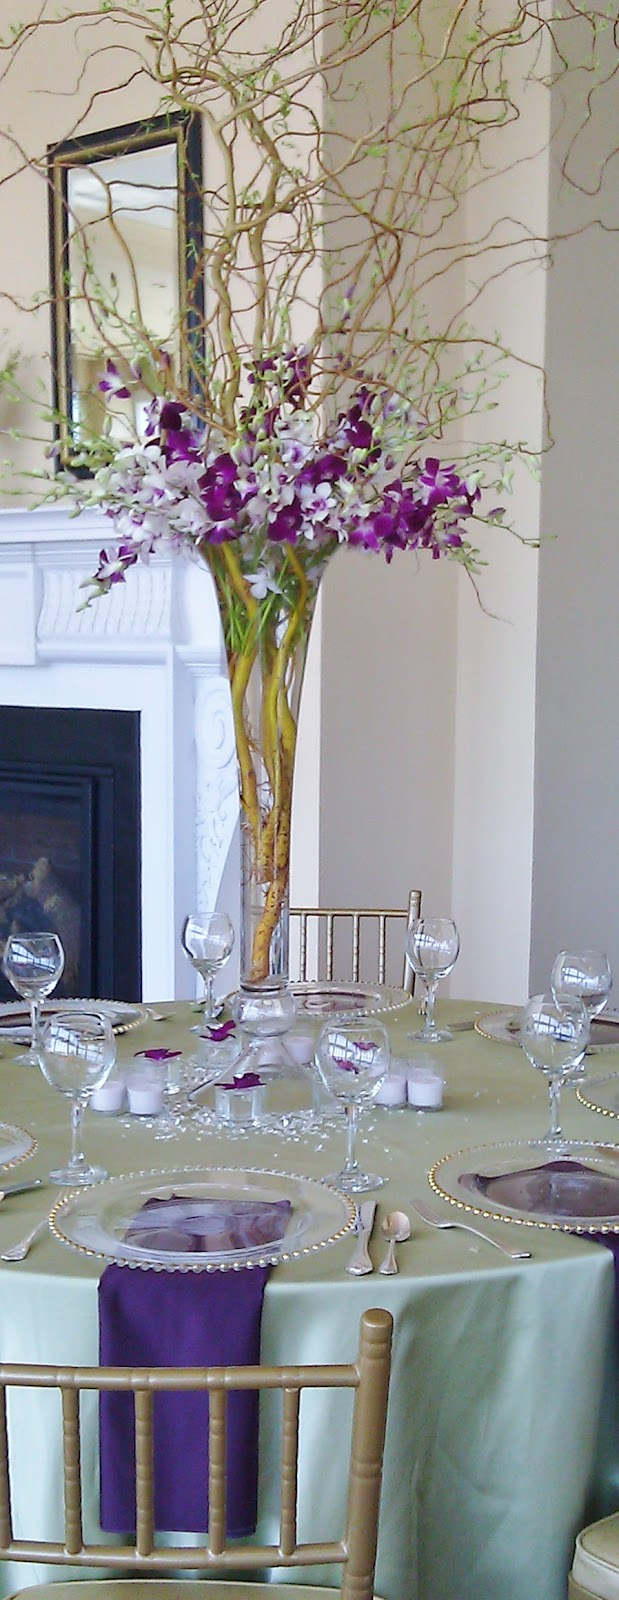 Petals inc weddings flowers more florist in peabody ma tall trumpet vase table centerpiece with orchids bamboo and curly willow flowers for a wedding at the cruiseport in gloucester reviewsmspy